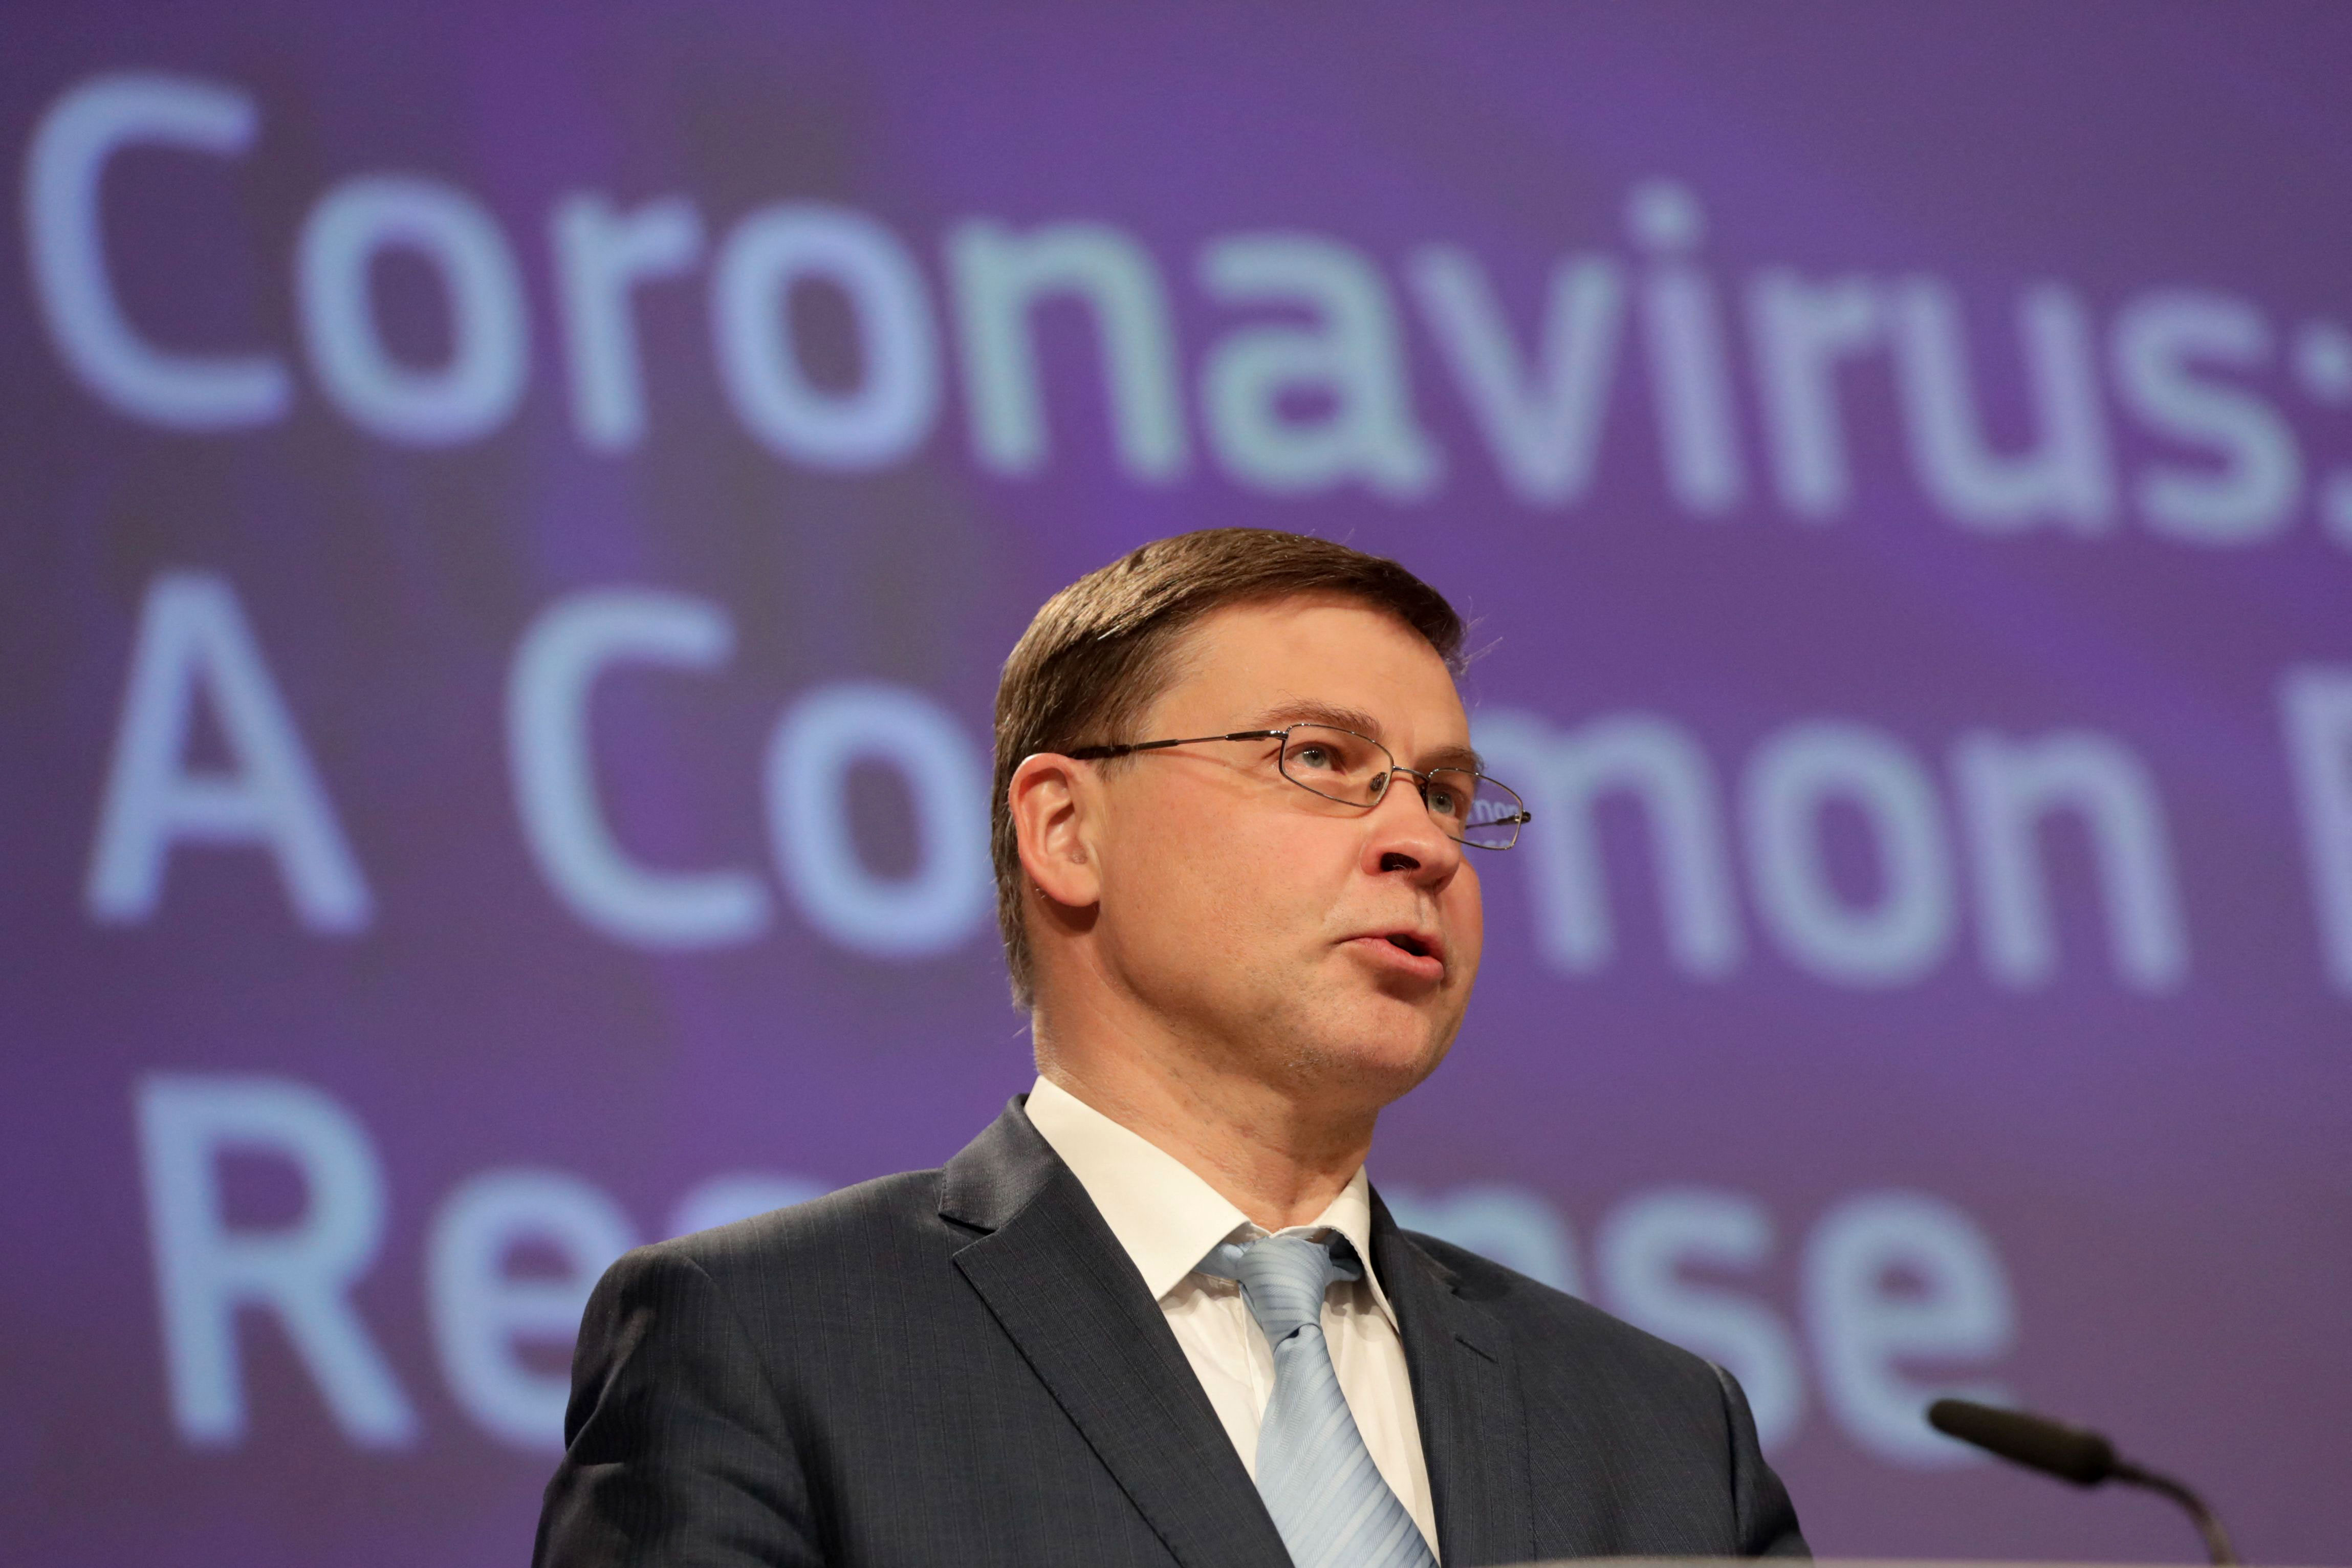 EU Commission Vice President Valdis Dombrovskis speaks at a press conference in Brussels, Belgium, on March 24.